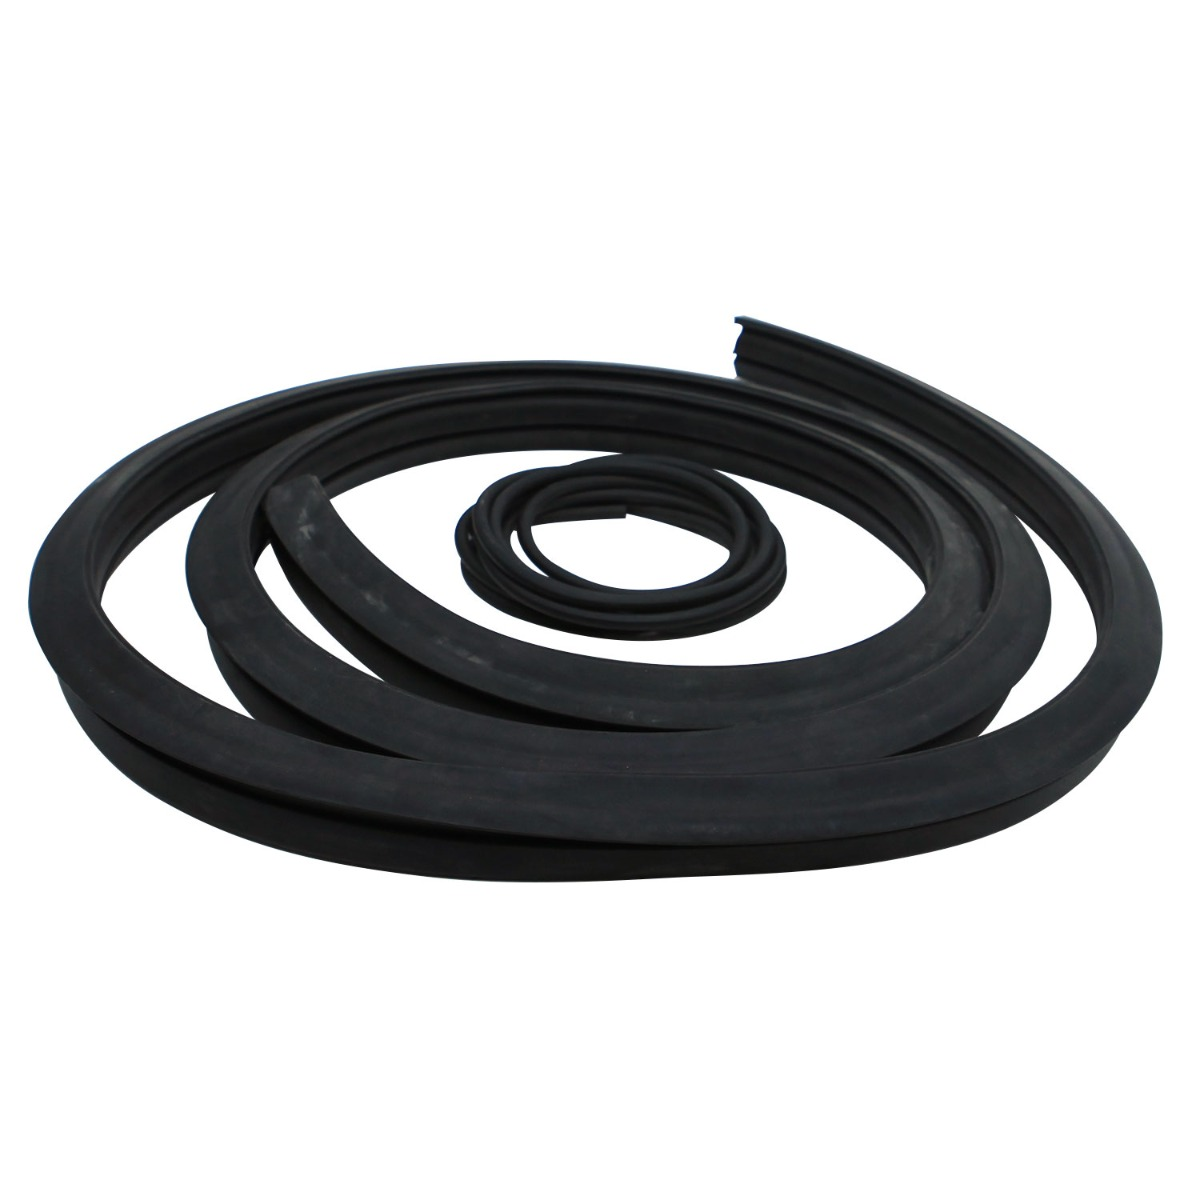 Rubber Seal and Cord 6554149 Compatible with Bobcat Skid Steer Loader 450 453 463 540 542 543 553 641 642 643 645 653 741 742 743 751 753 763 773 843 853 863 864 873 883 953 963 7753